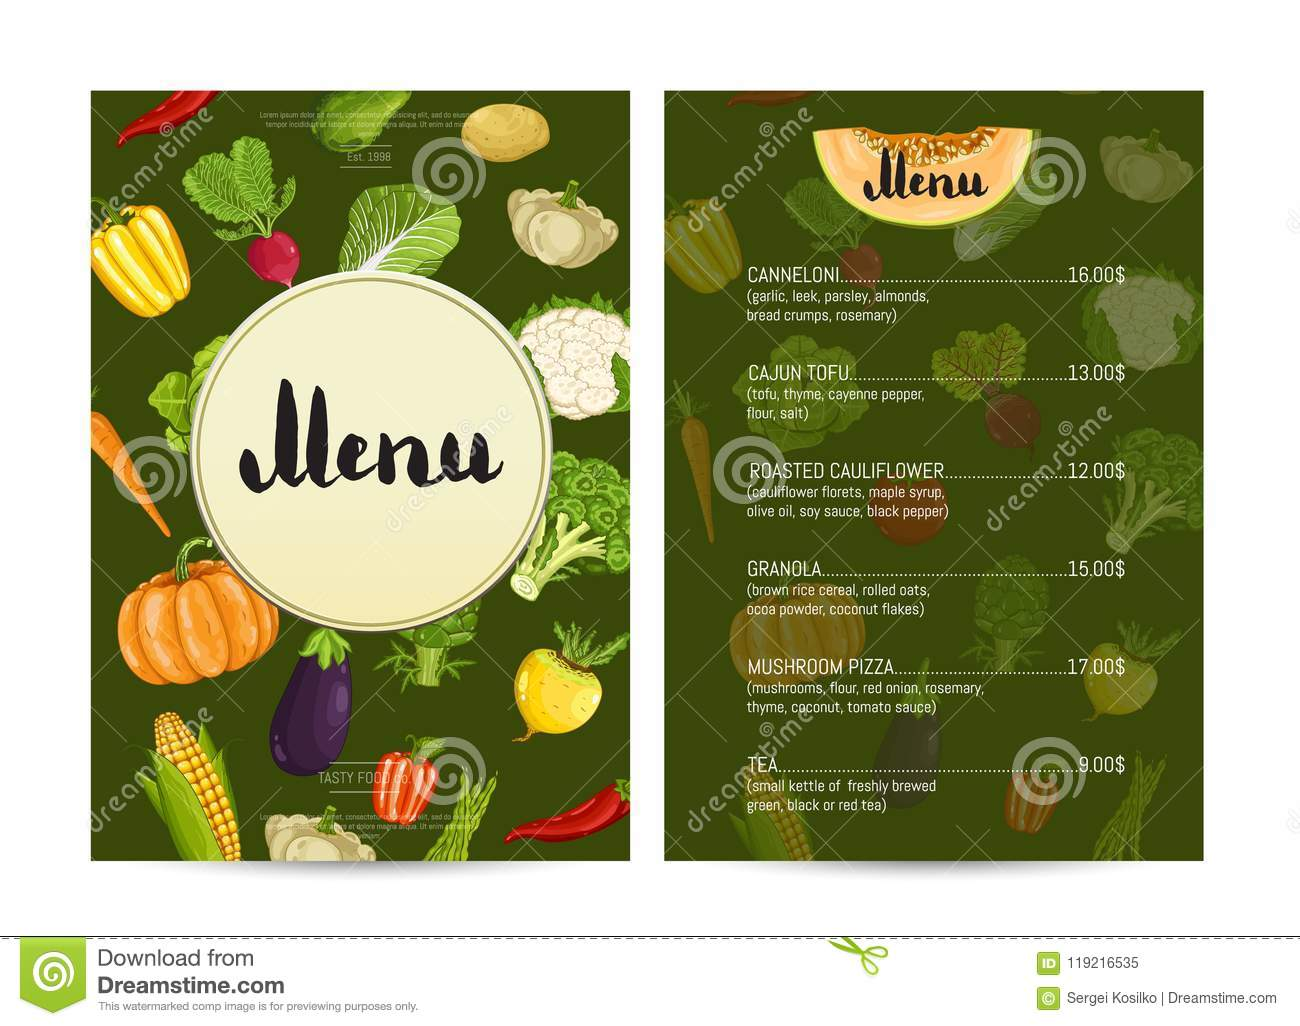 Vegan Cafe Food Menu Design Stock Illustration Illustration Of Delicacy Freshness 119216535